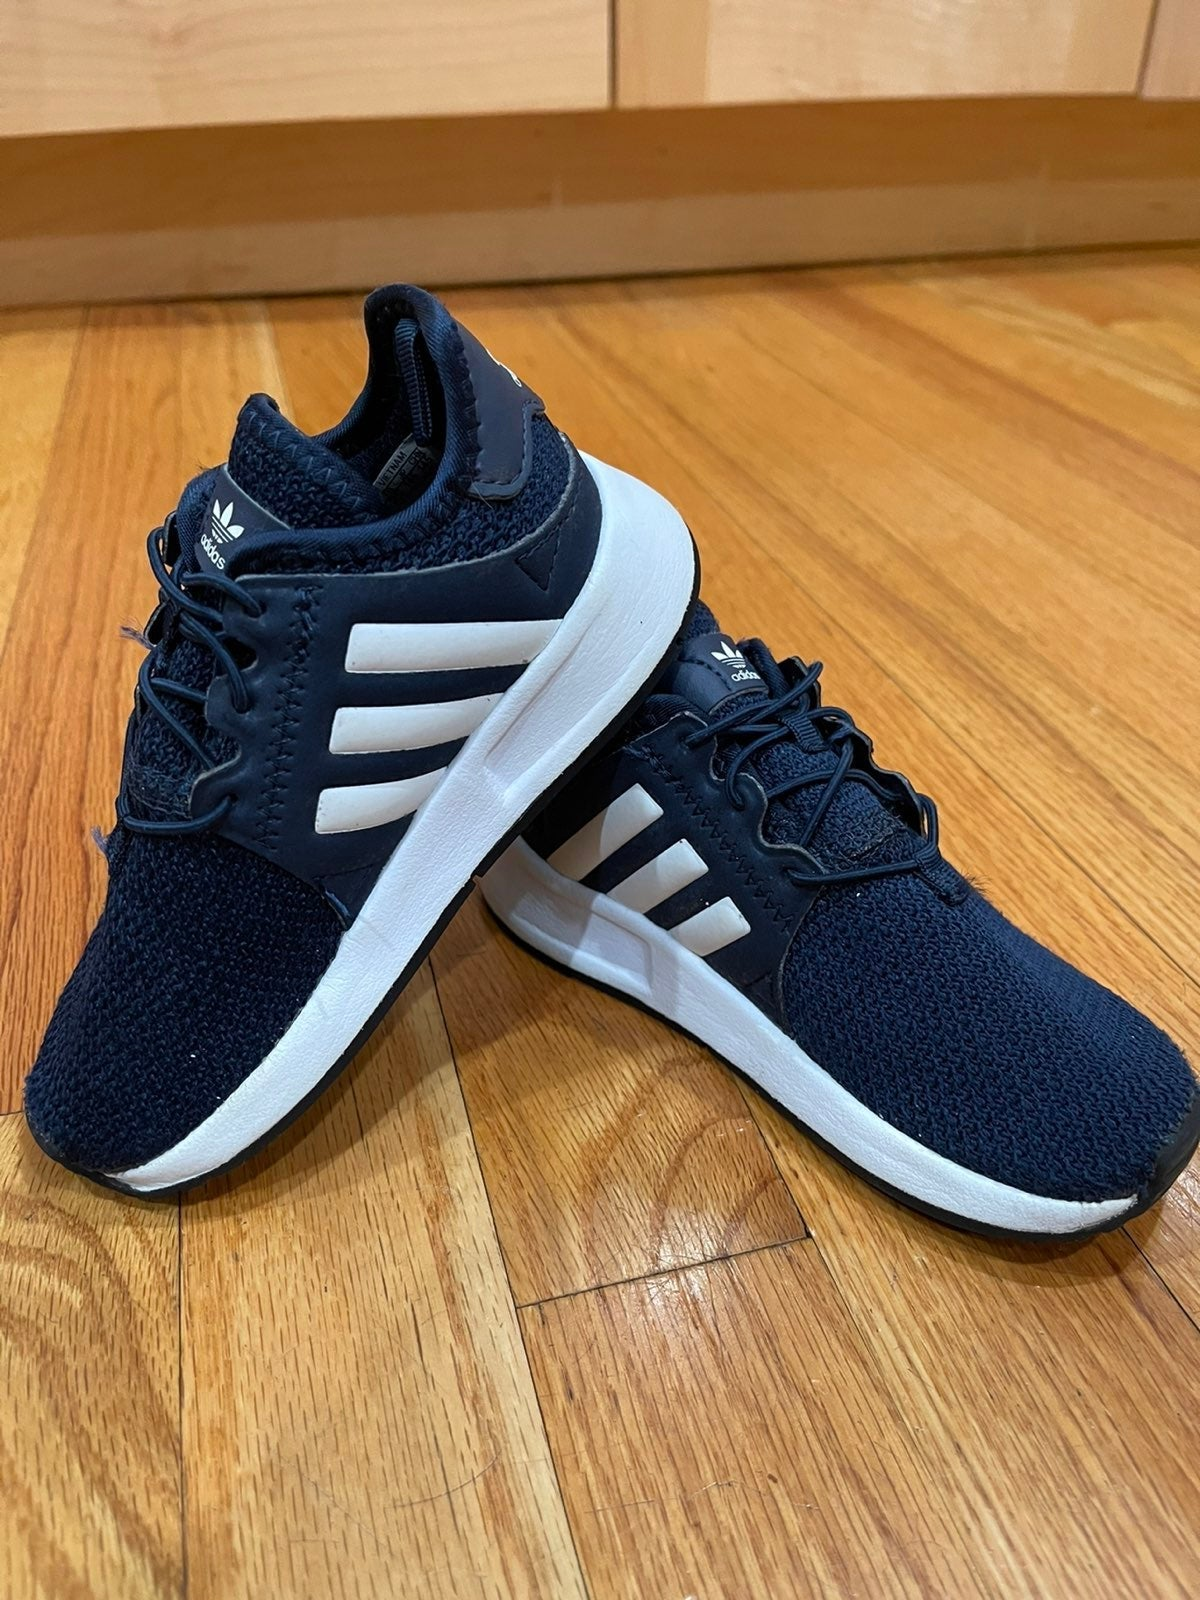 Adidas Ortholite Sneakers Toddler 8 EUC.